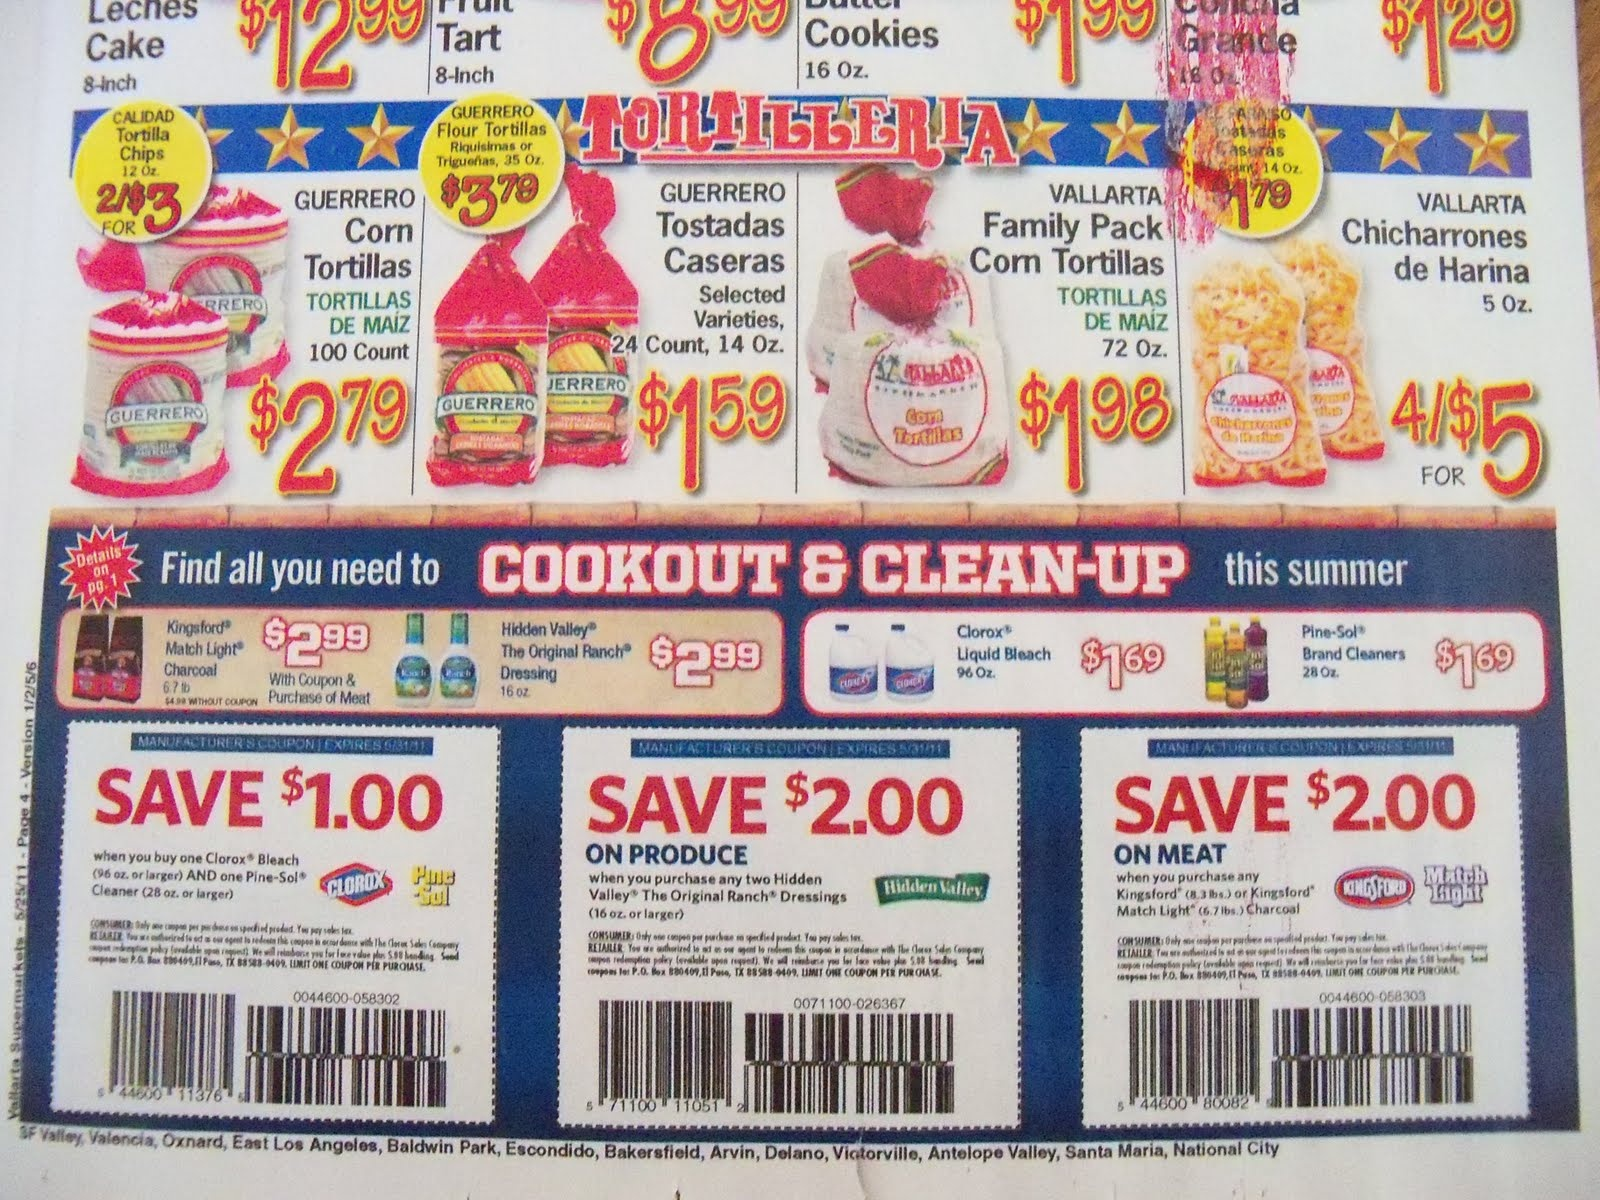 Printable Coupons Without Downloading Software / Kindle Deals Cyber - Free Printable Coupons Without Downloading Or Registering